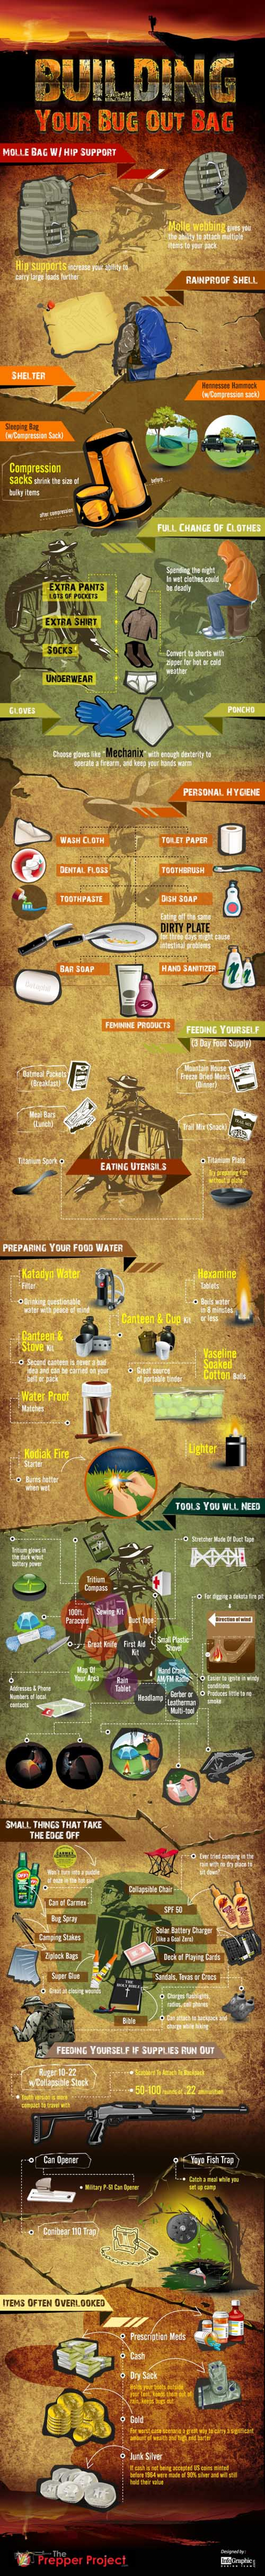 Building your Bug Out Bag for Better Chance of Survival Infographic